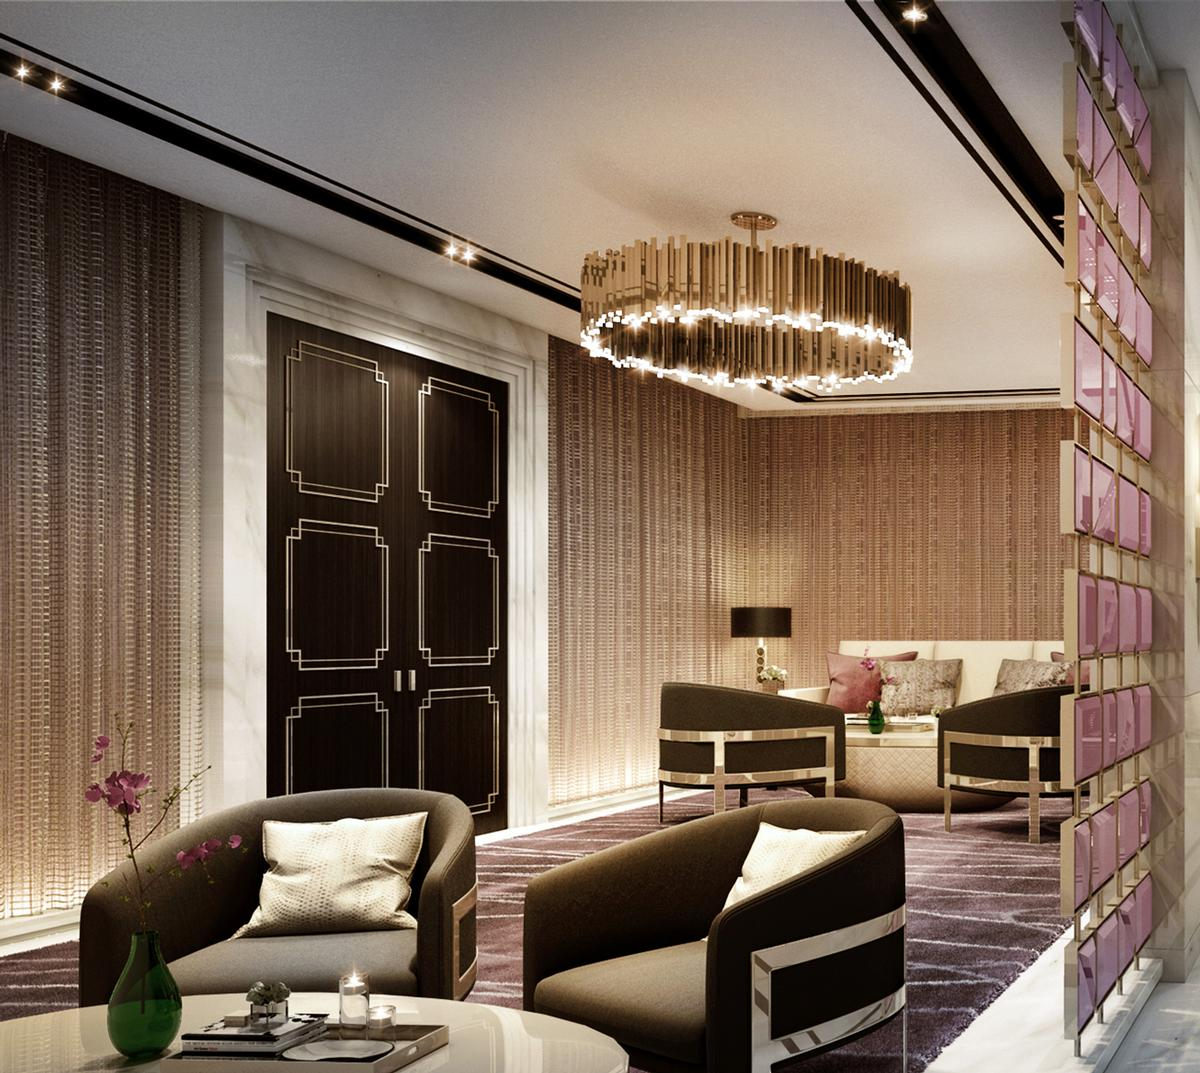 Amazing WATGu0027s Sister Company Wimberly Interiors Is Responsible For The Interiors  Of The Hotel, Including The